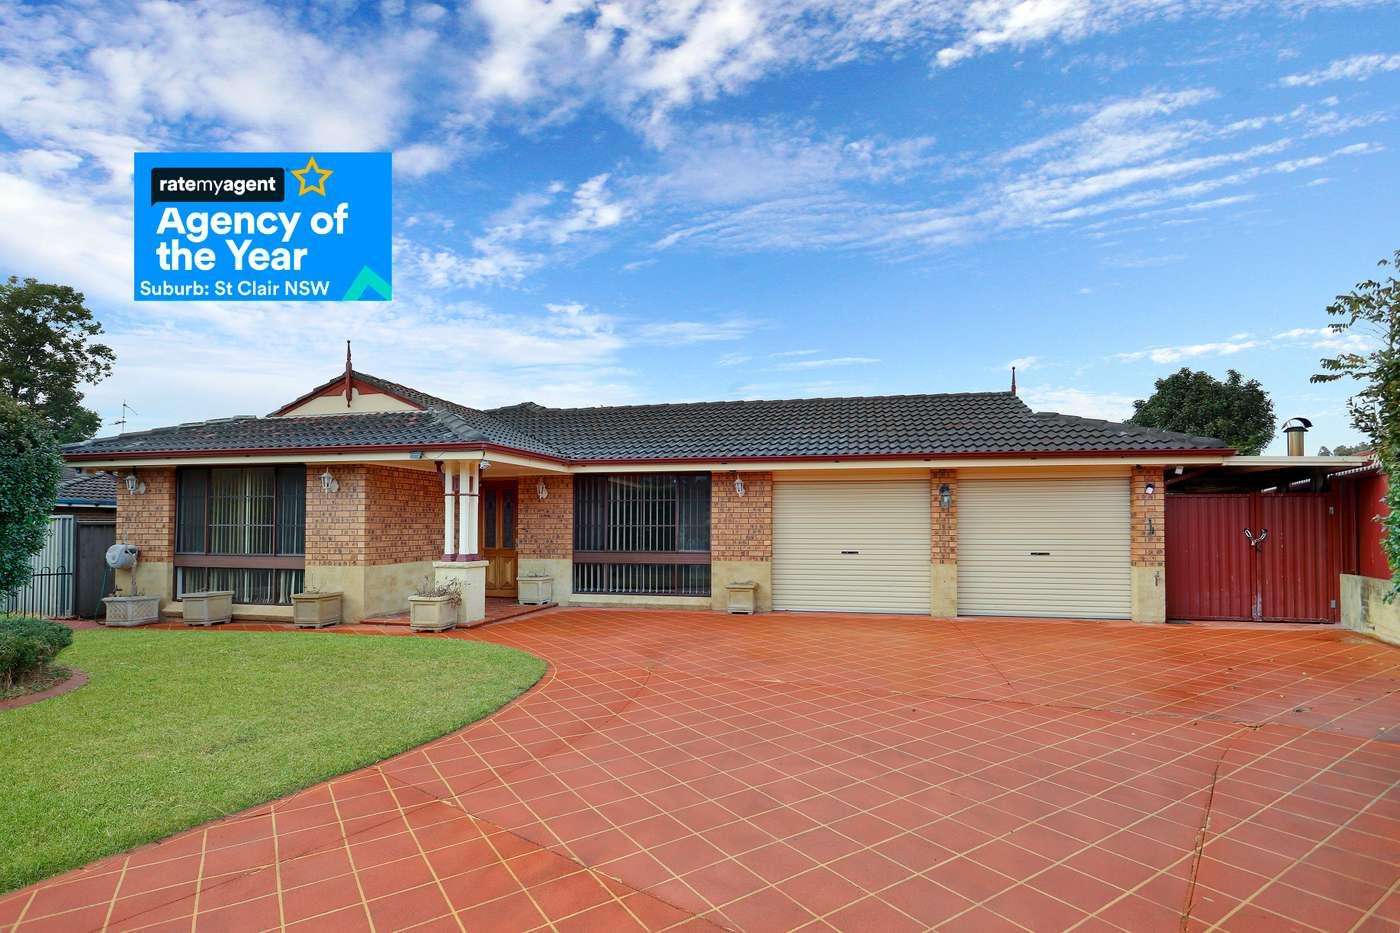 Main view of Homely house listing, 6 Colorado Drive, St Clair, NSW 2759